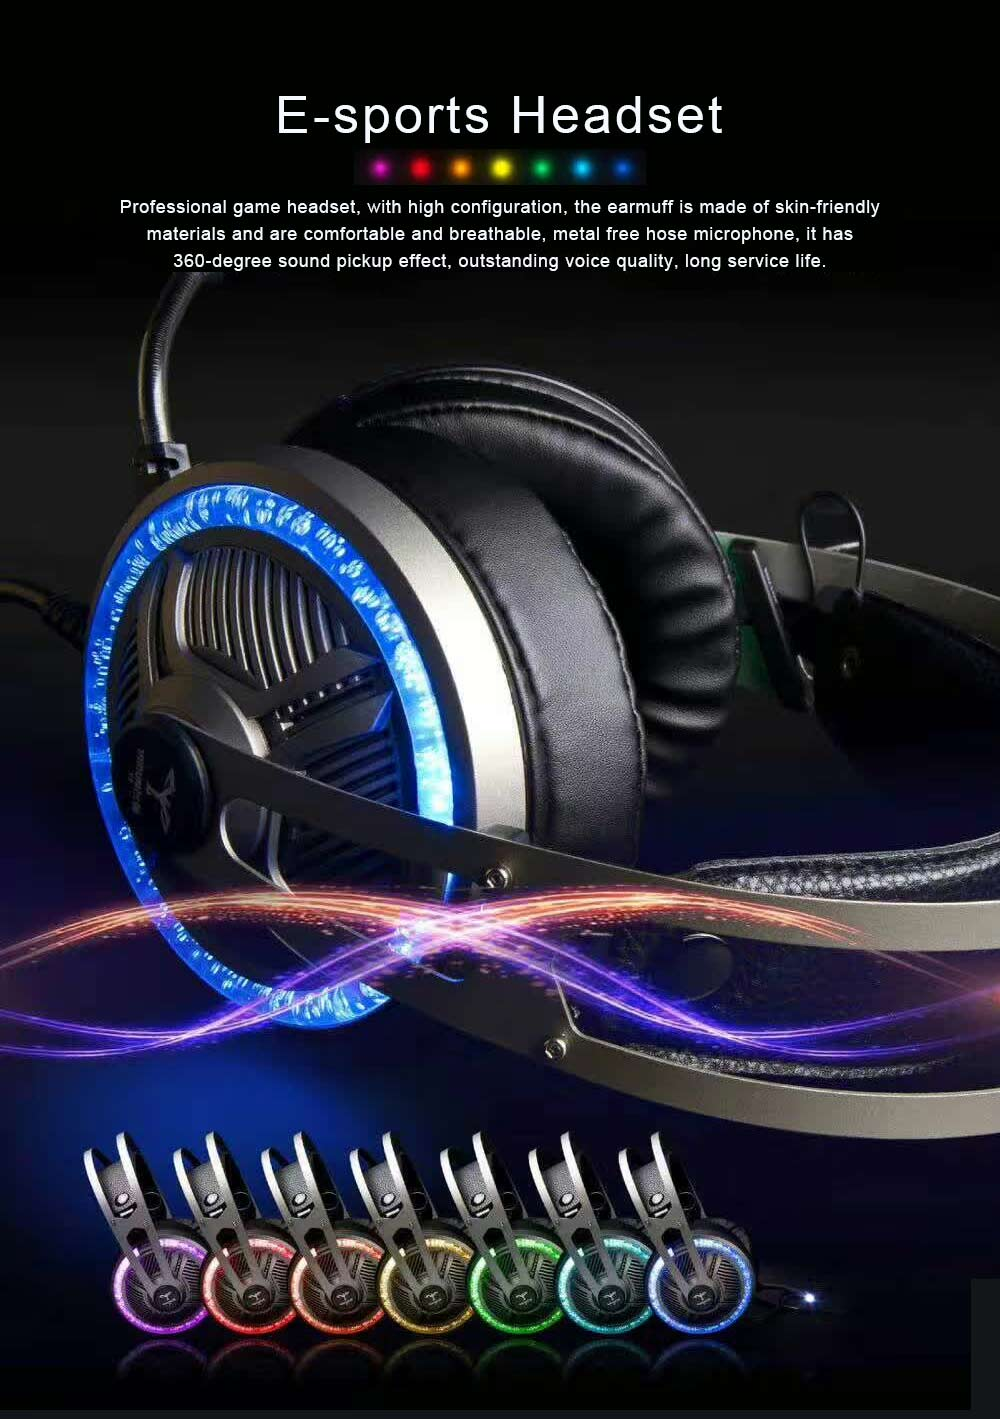 Headset for Video Games Luminescence Metal with Microphone High Quality Professional E-sports Headphones 0